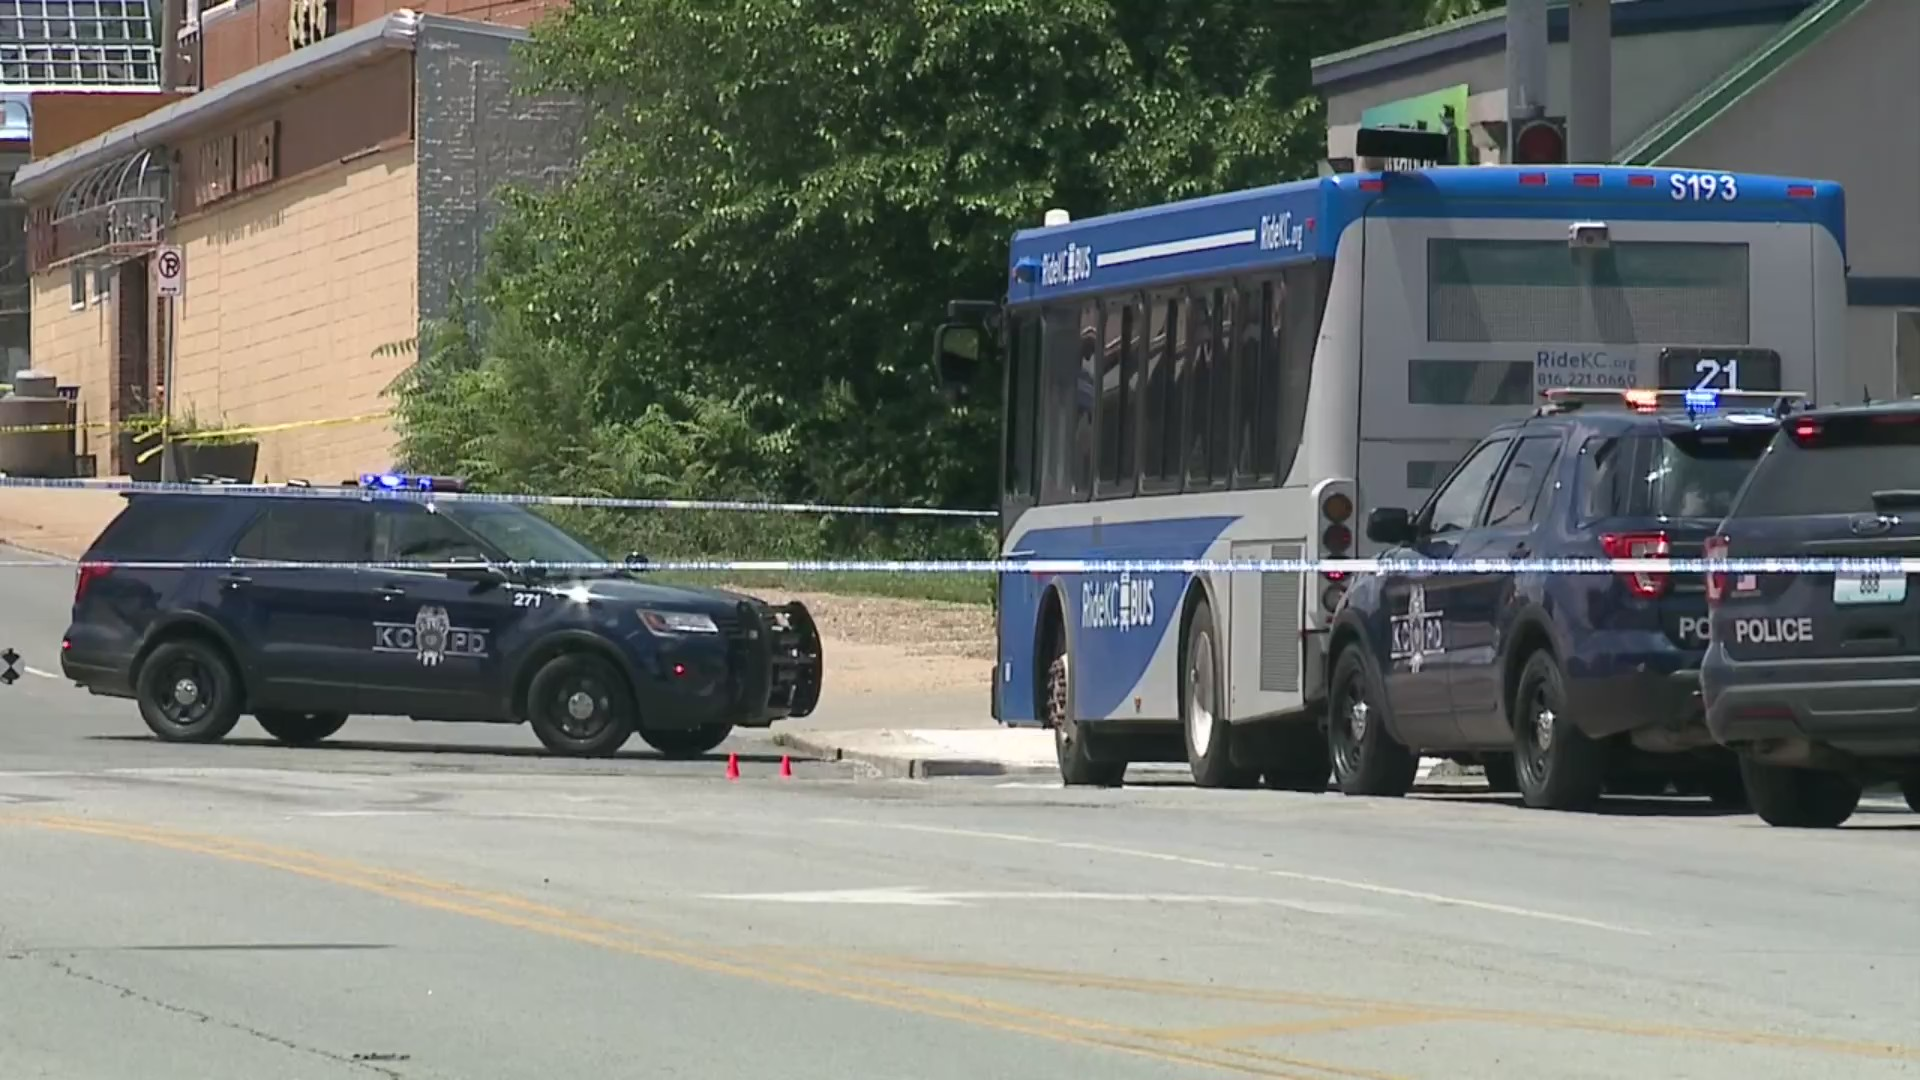 Picture of crime scene after officer, bus driver shot